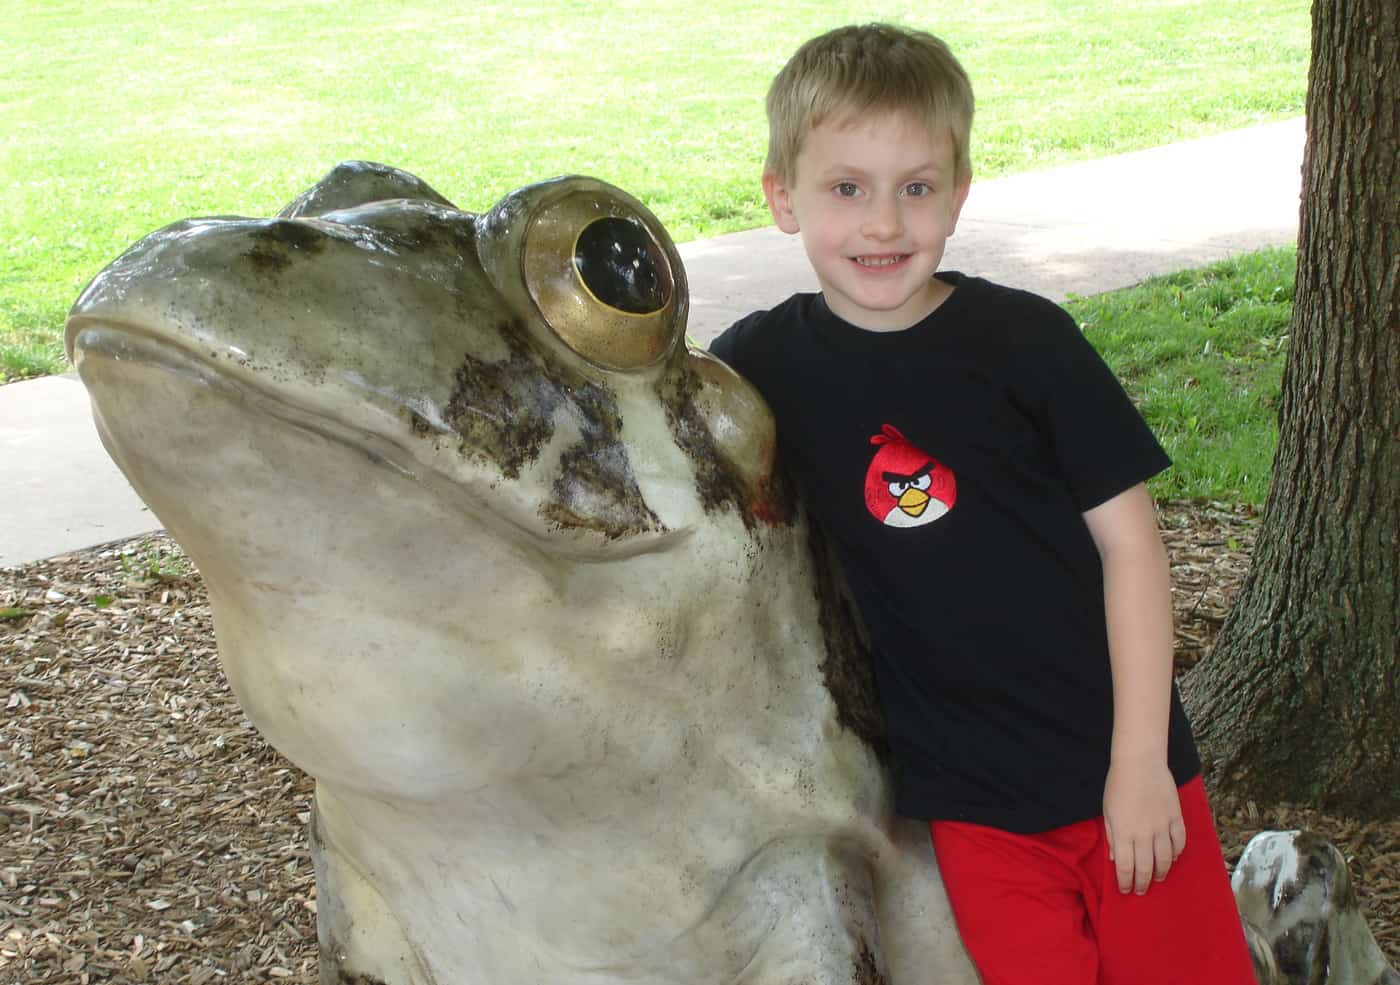 kid with frog statue